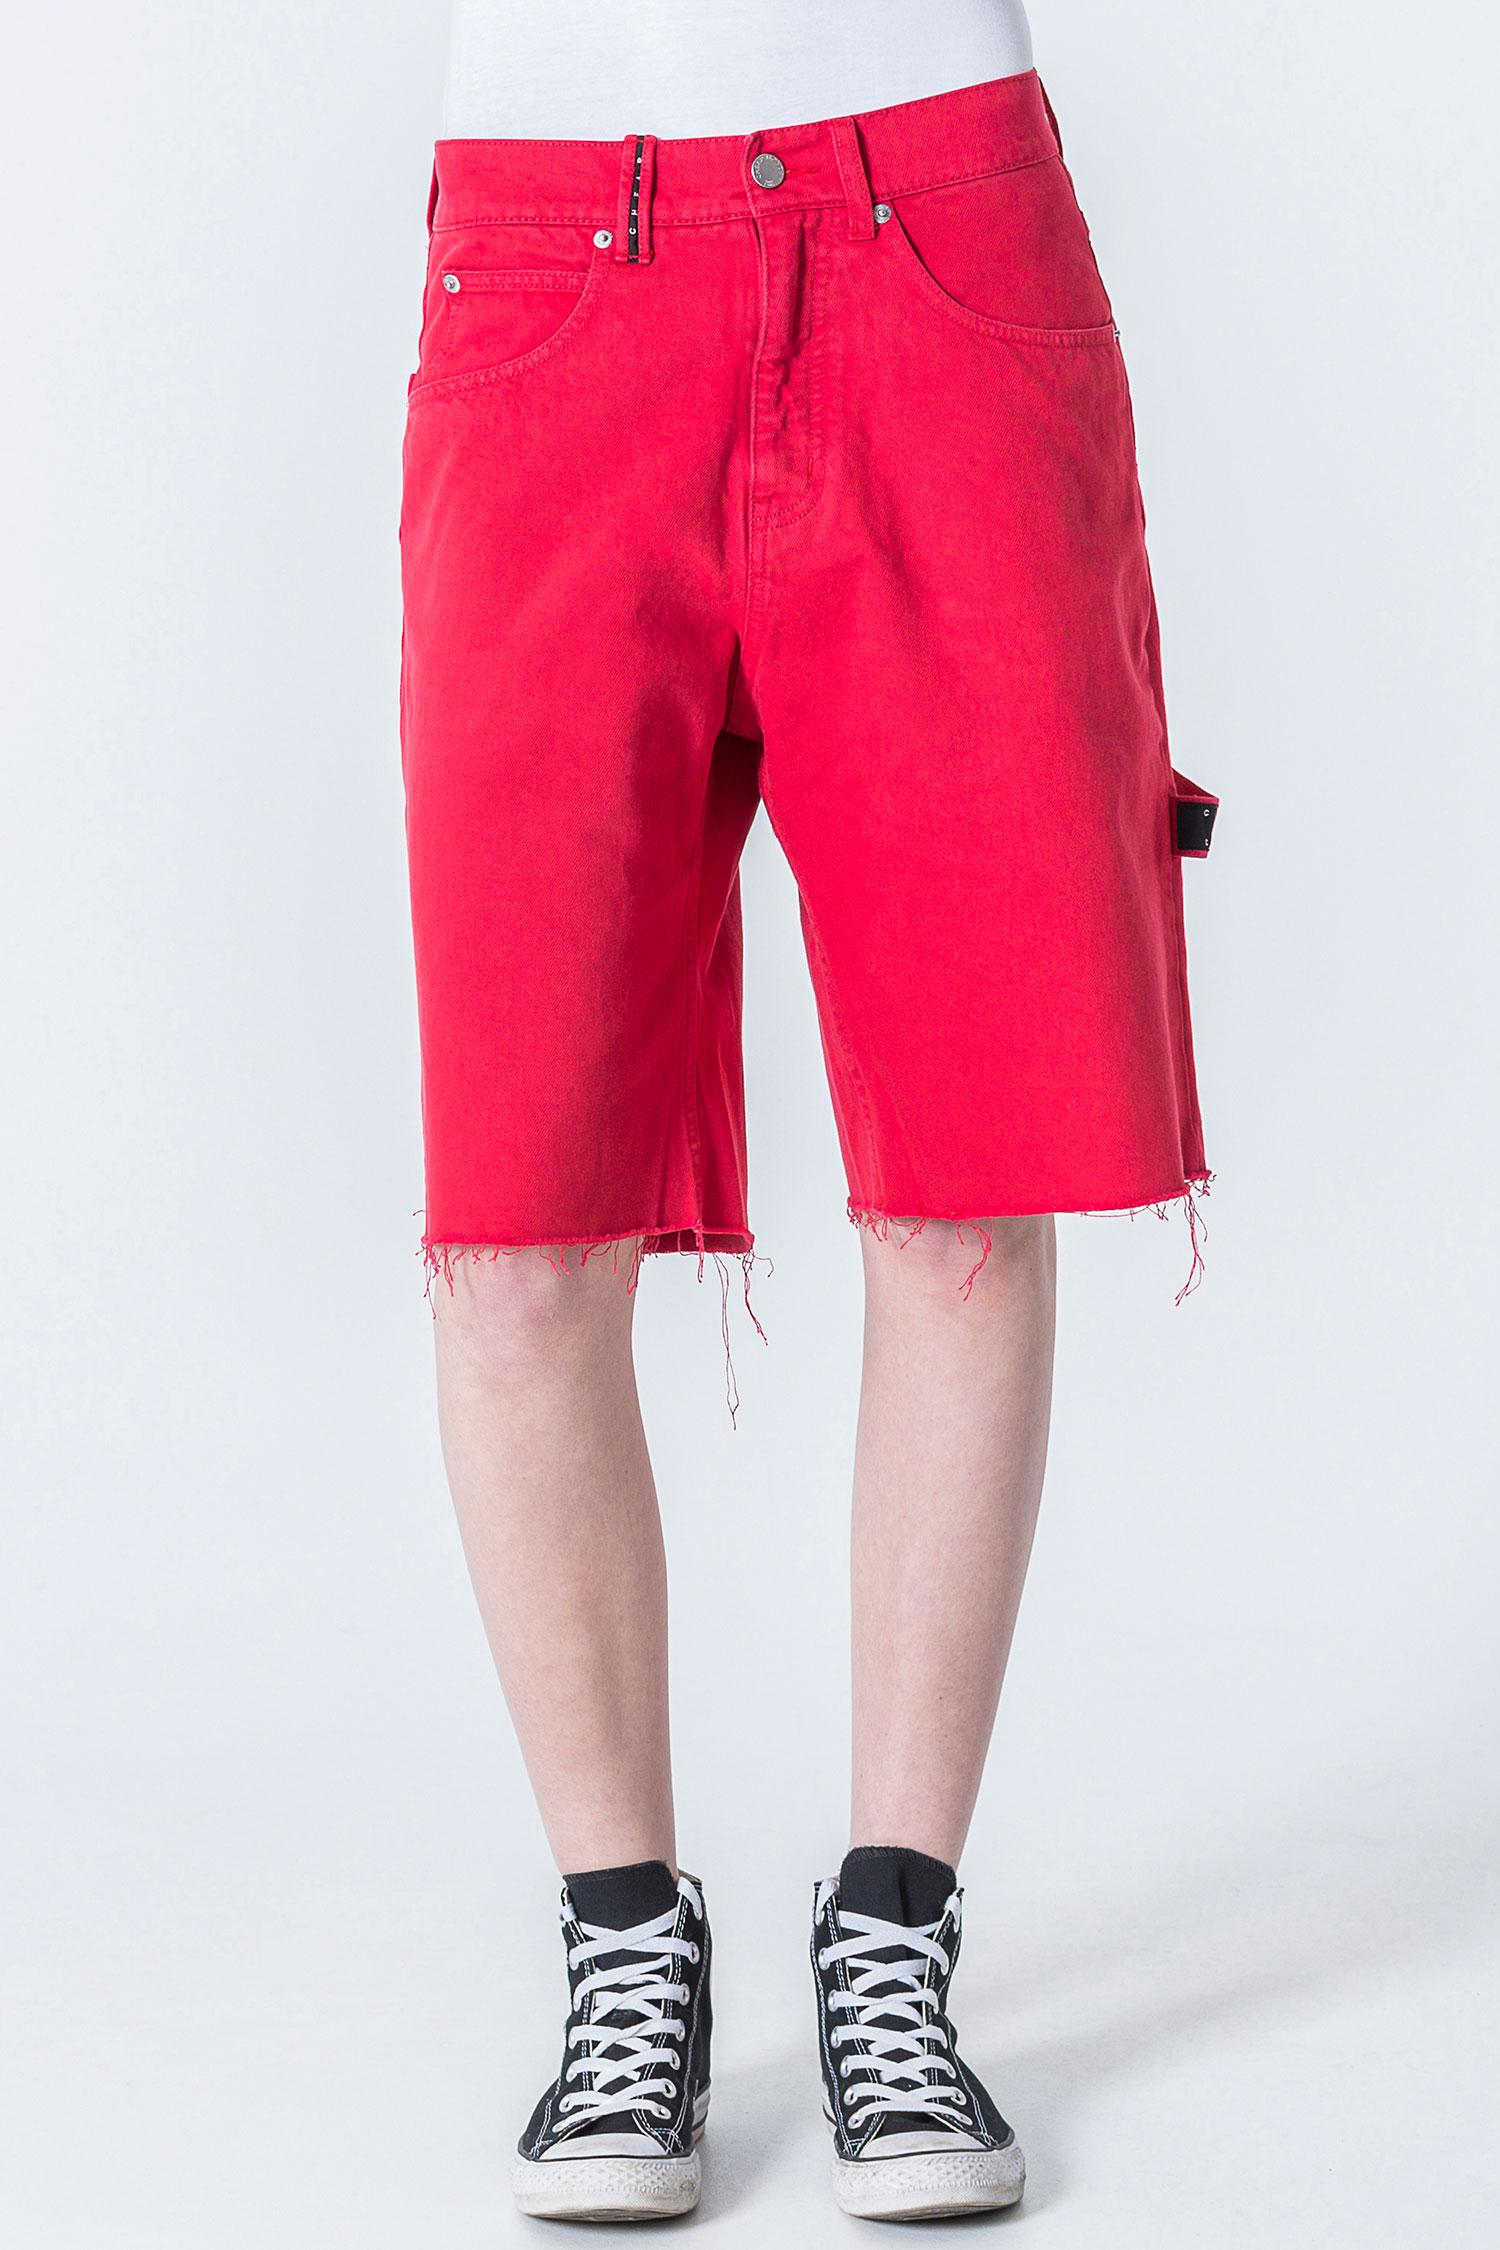 1d8b91ef84 Cheap Monday Cred Od Red Shorts in Red - Lyst